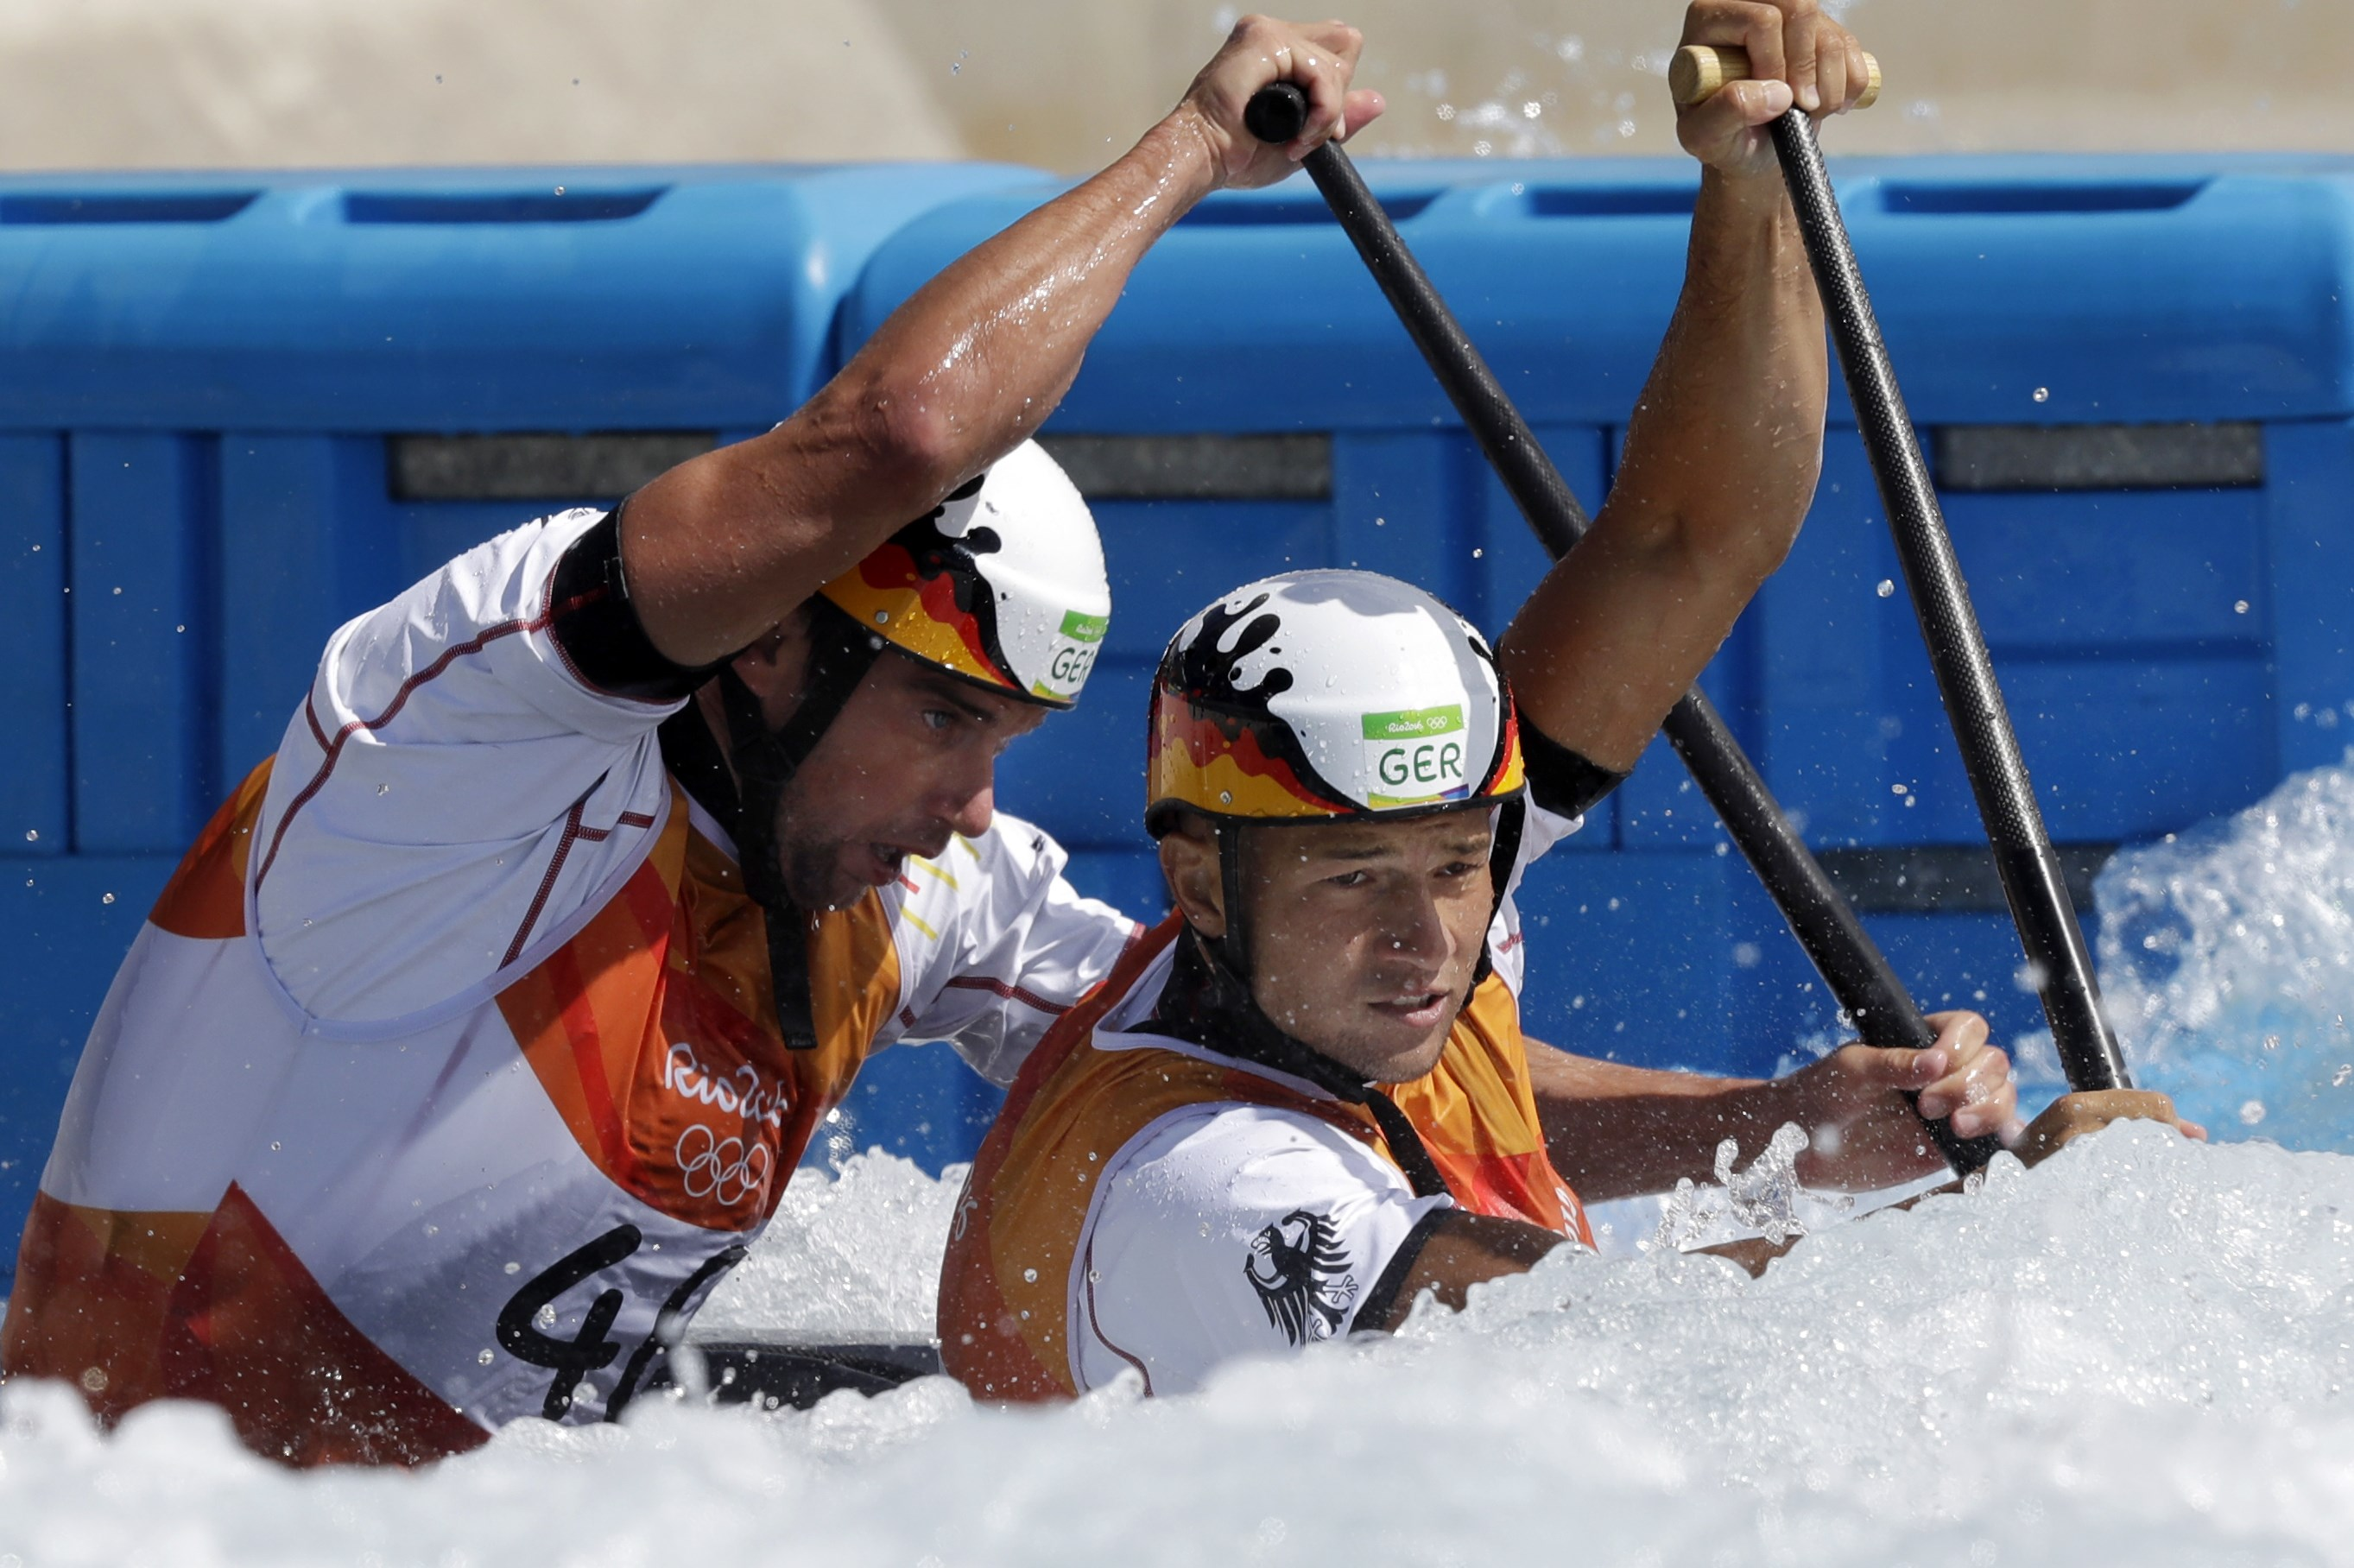 Franz Anton, front, and Jan Benzien of Germany paddle to a fourth place finish in canoe double C2 men's canoe slalom at the 2016 Summer Olympics in Rio de Janeiro, Brazil, Thursday, Aug. 11, 2016. (AP Photo/Robert F. Bukaty)